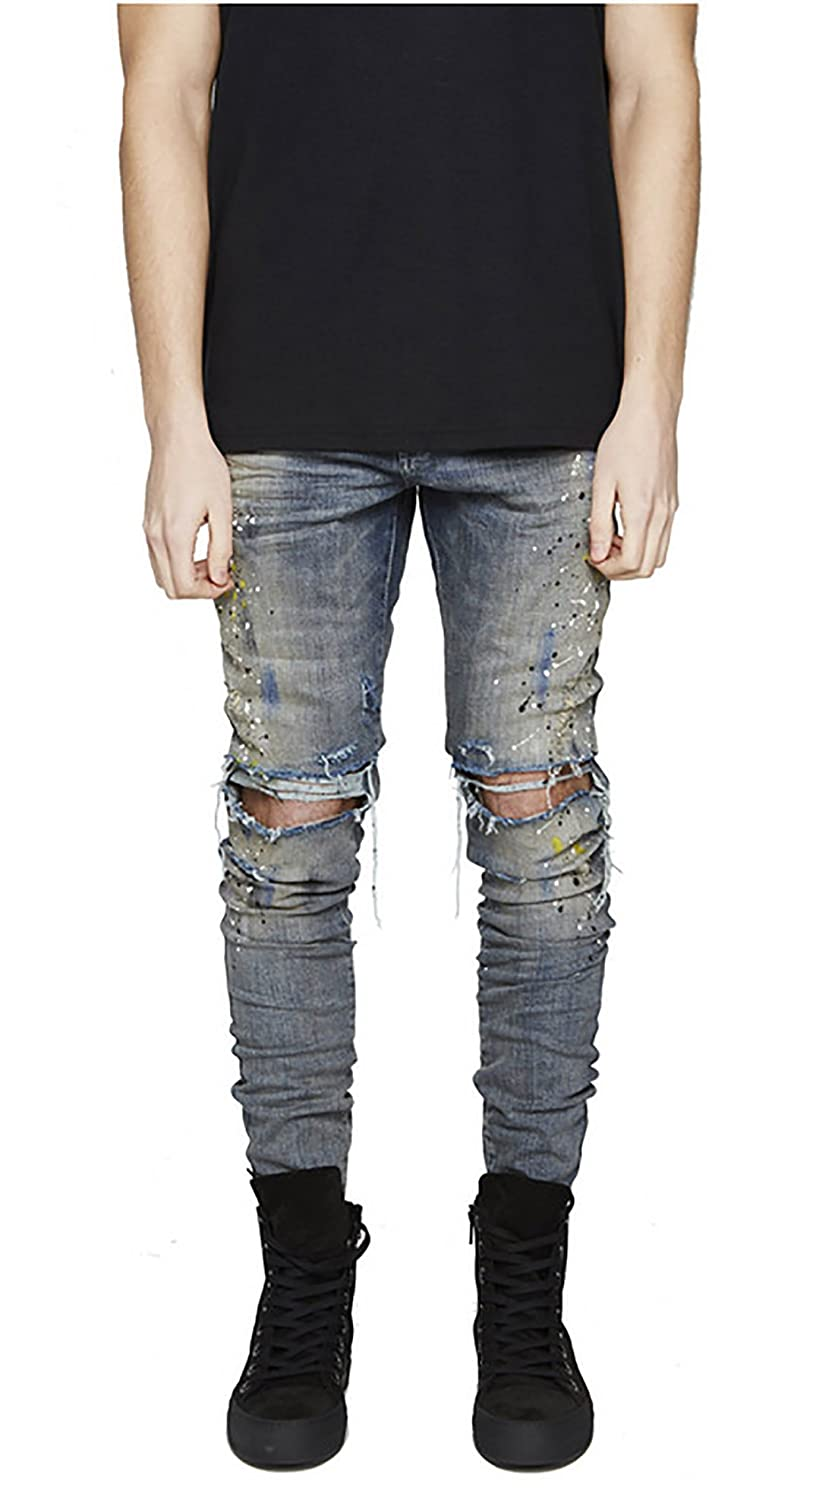 MOUTEN Mens Low Waist Ripped Holes Slim Fit Casual Stretchy Denim Jeans Pants